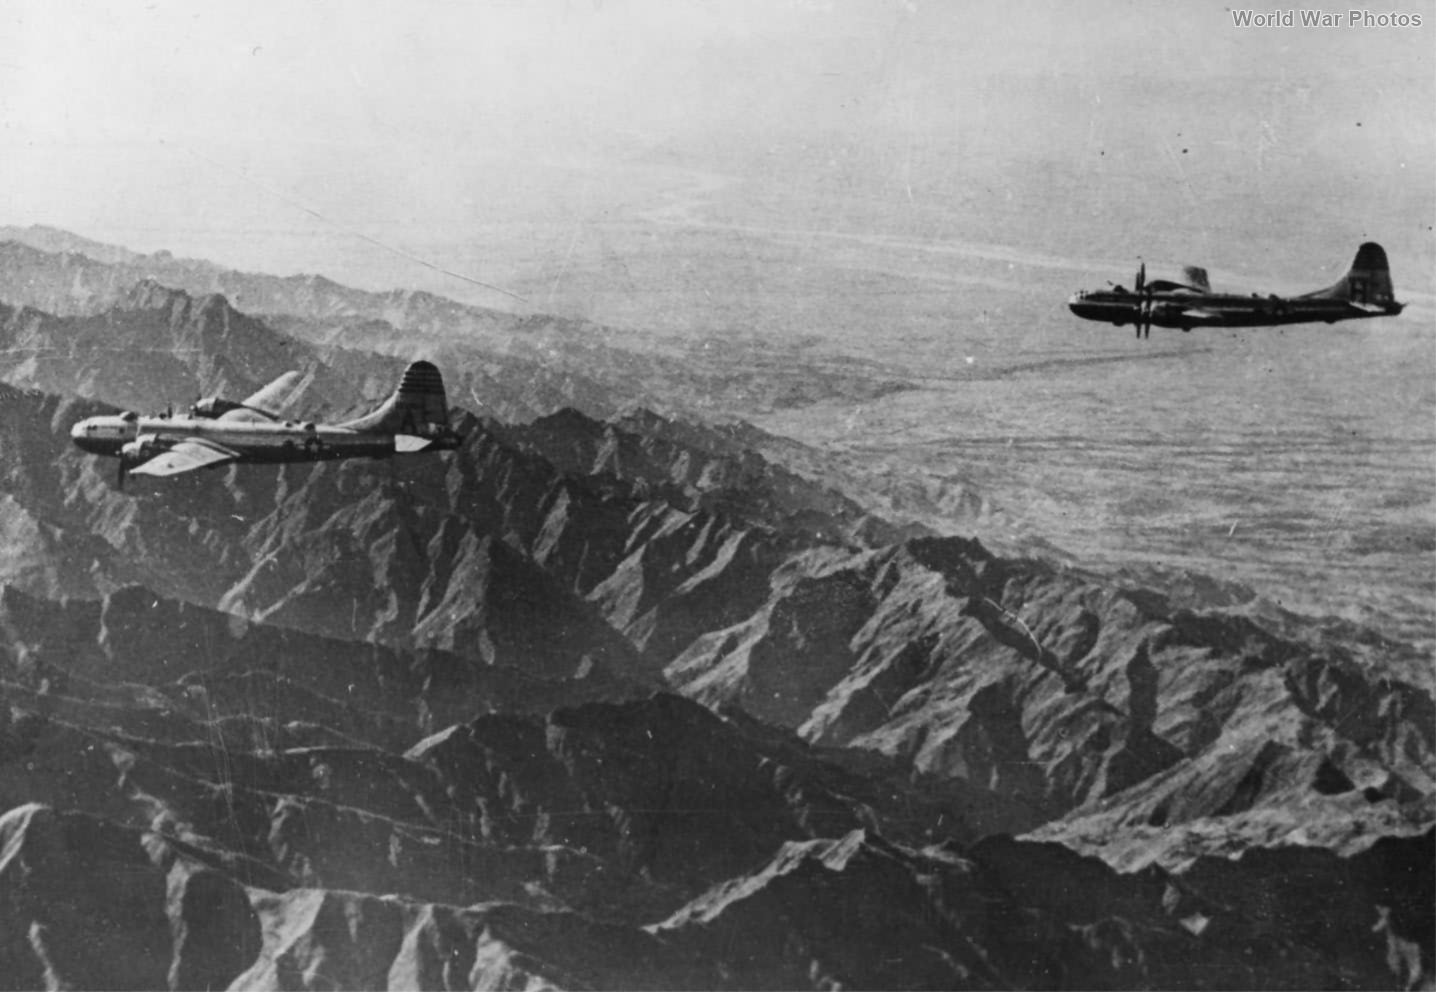 B-29 of the 40th BG over China